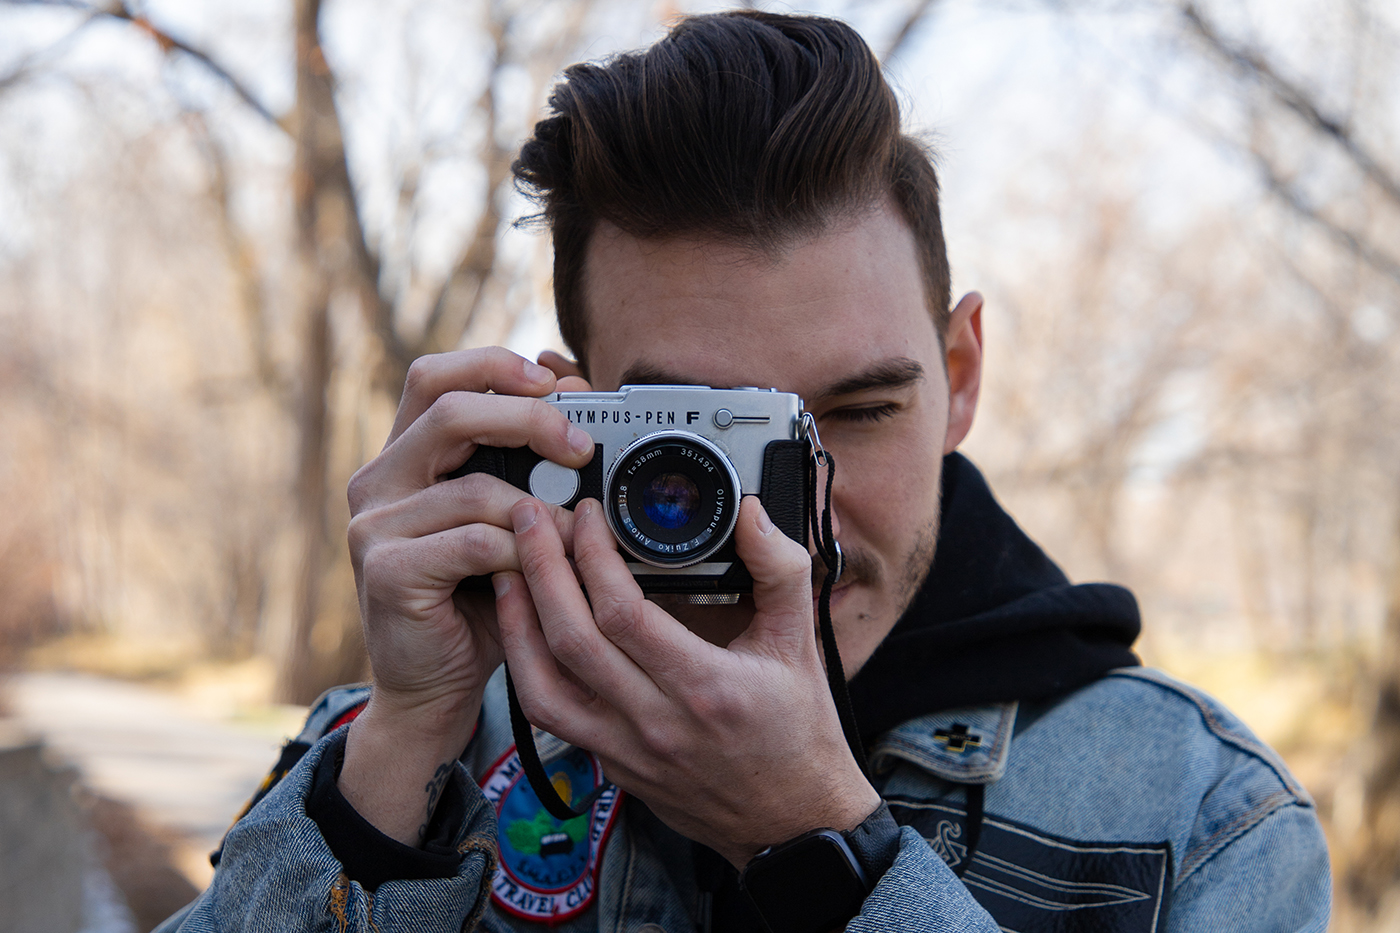 Originally from Tennessee, local photographer Cam Kerper inflects his style with outerwear one might see around SLC and Utah.